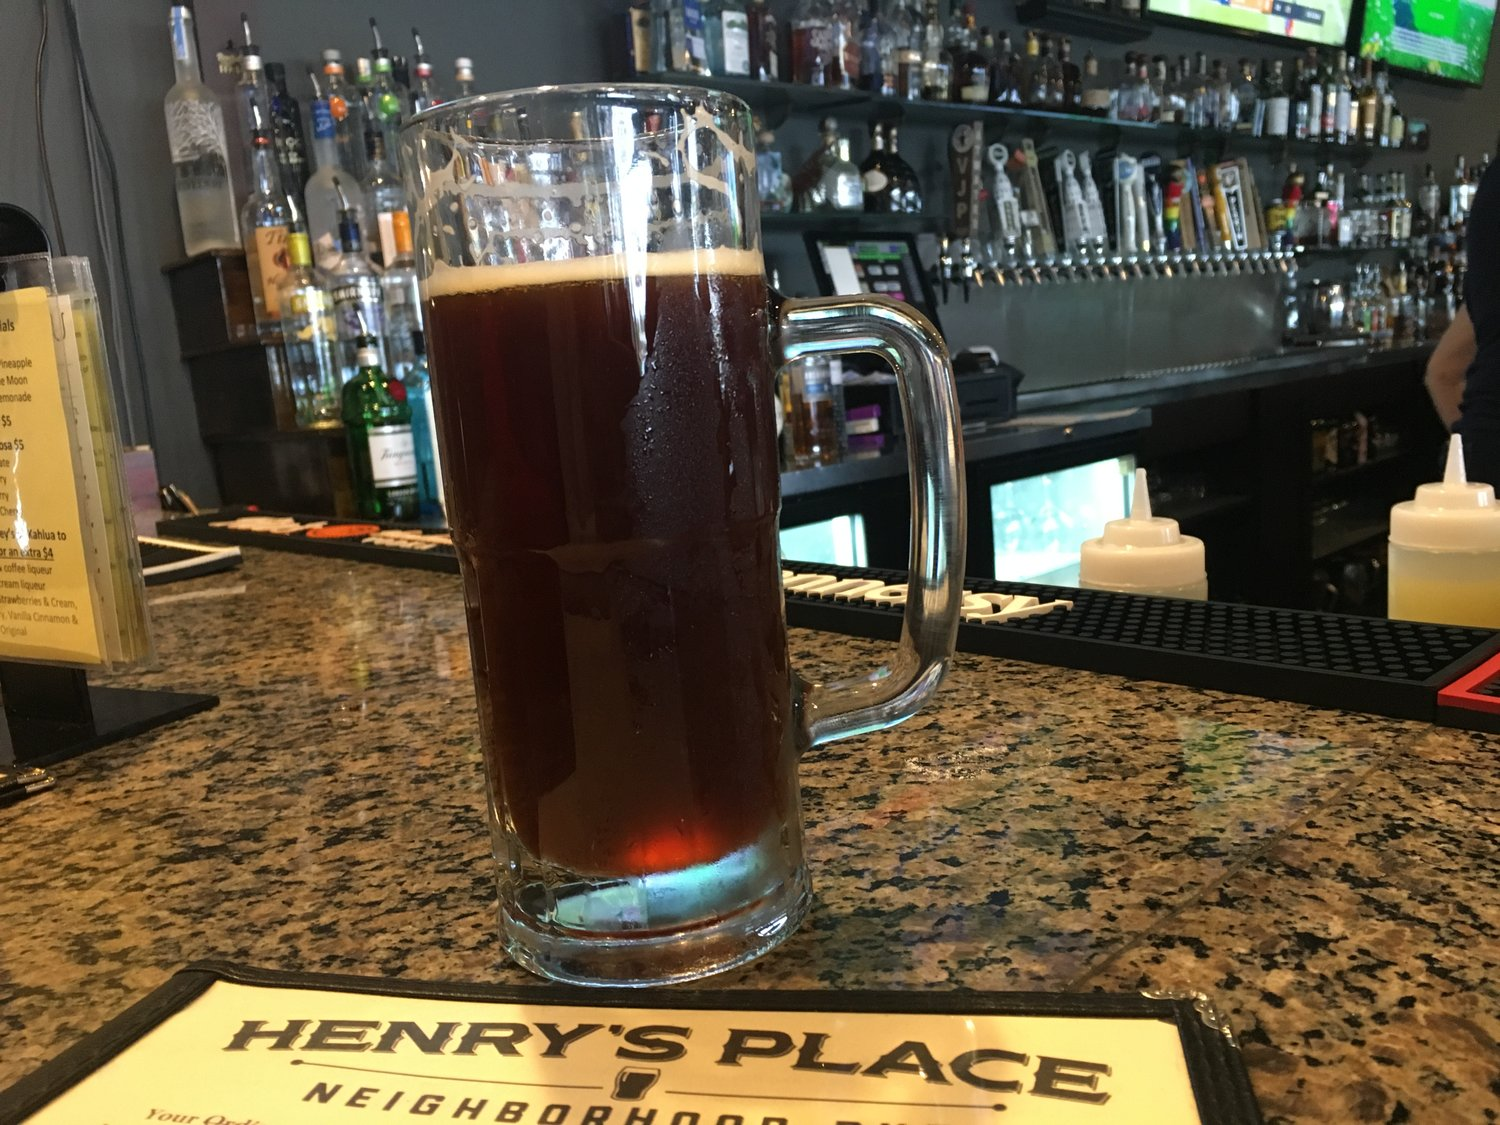 Henry's Place is one of the first bars in Greater Lansing to ban the sale of Founders beer in response to the brewery's poor handling of a racial discrimination lawsuit.